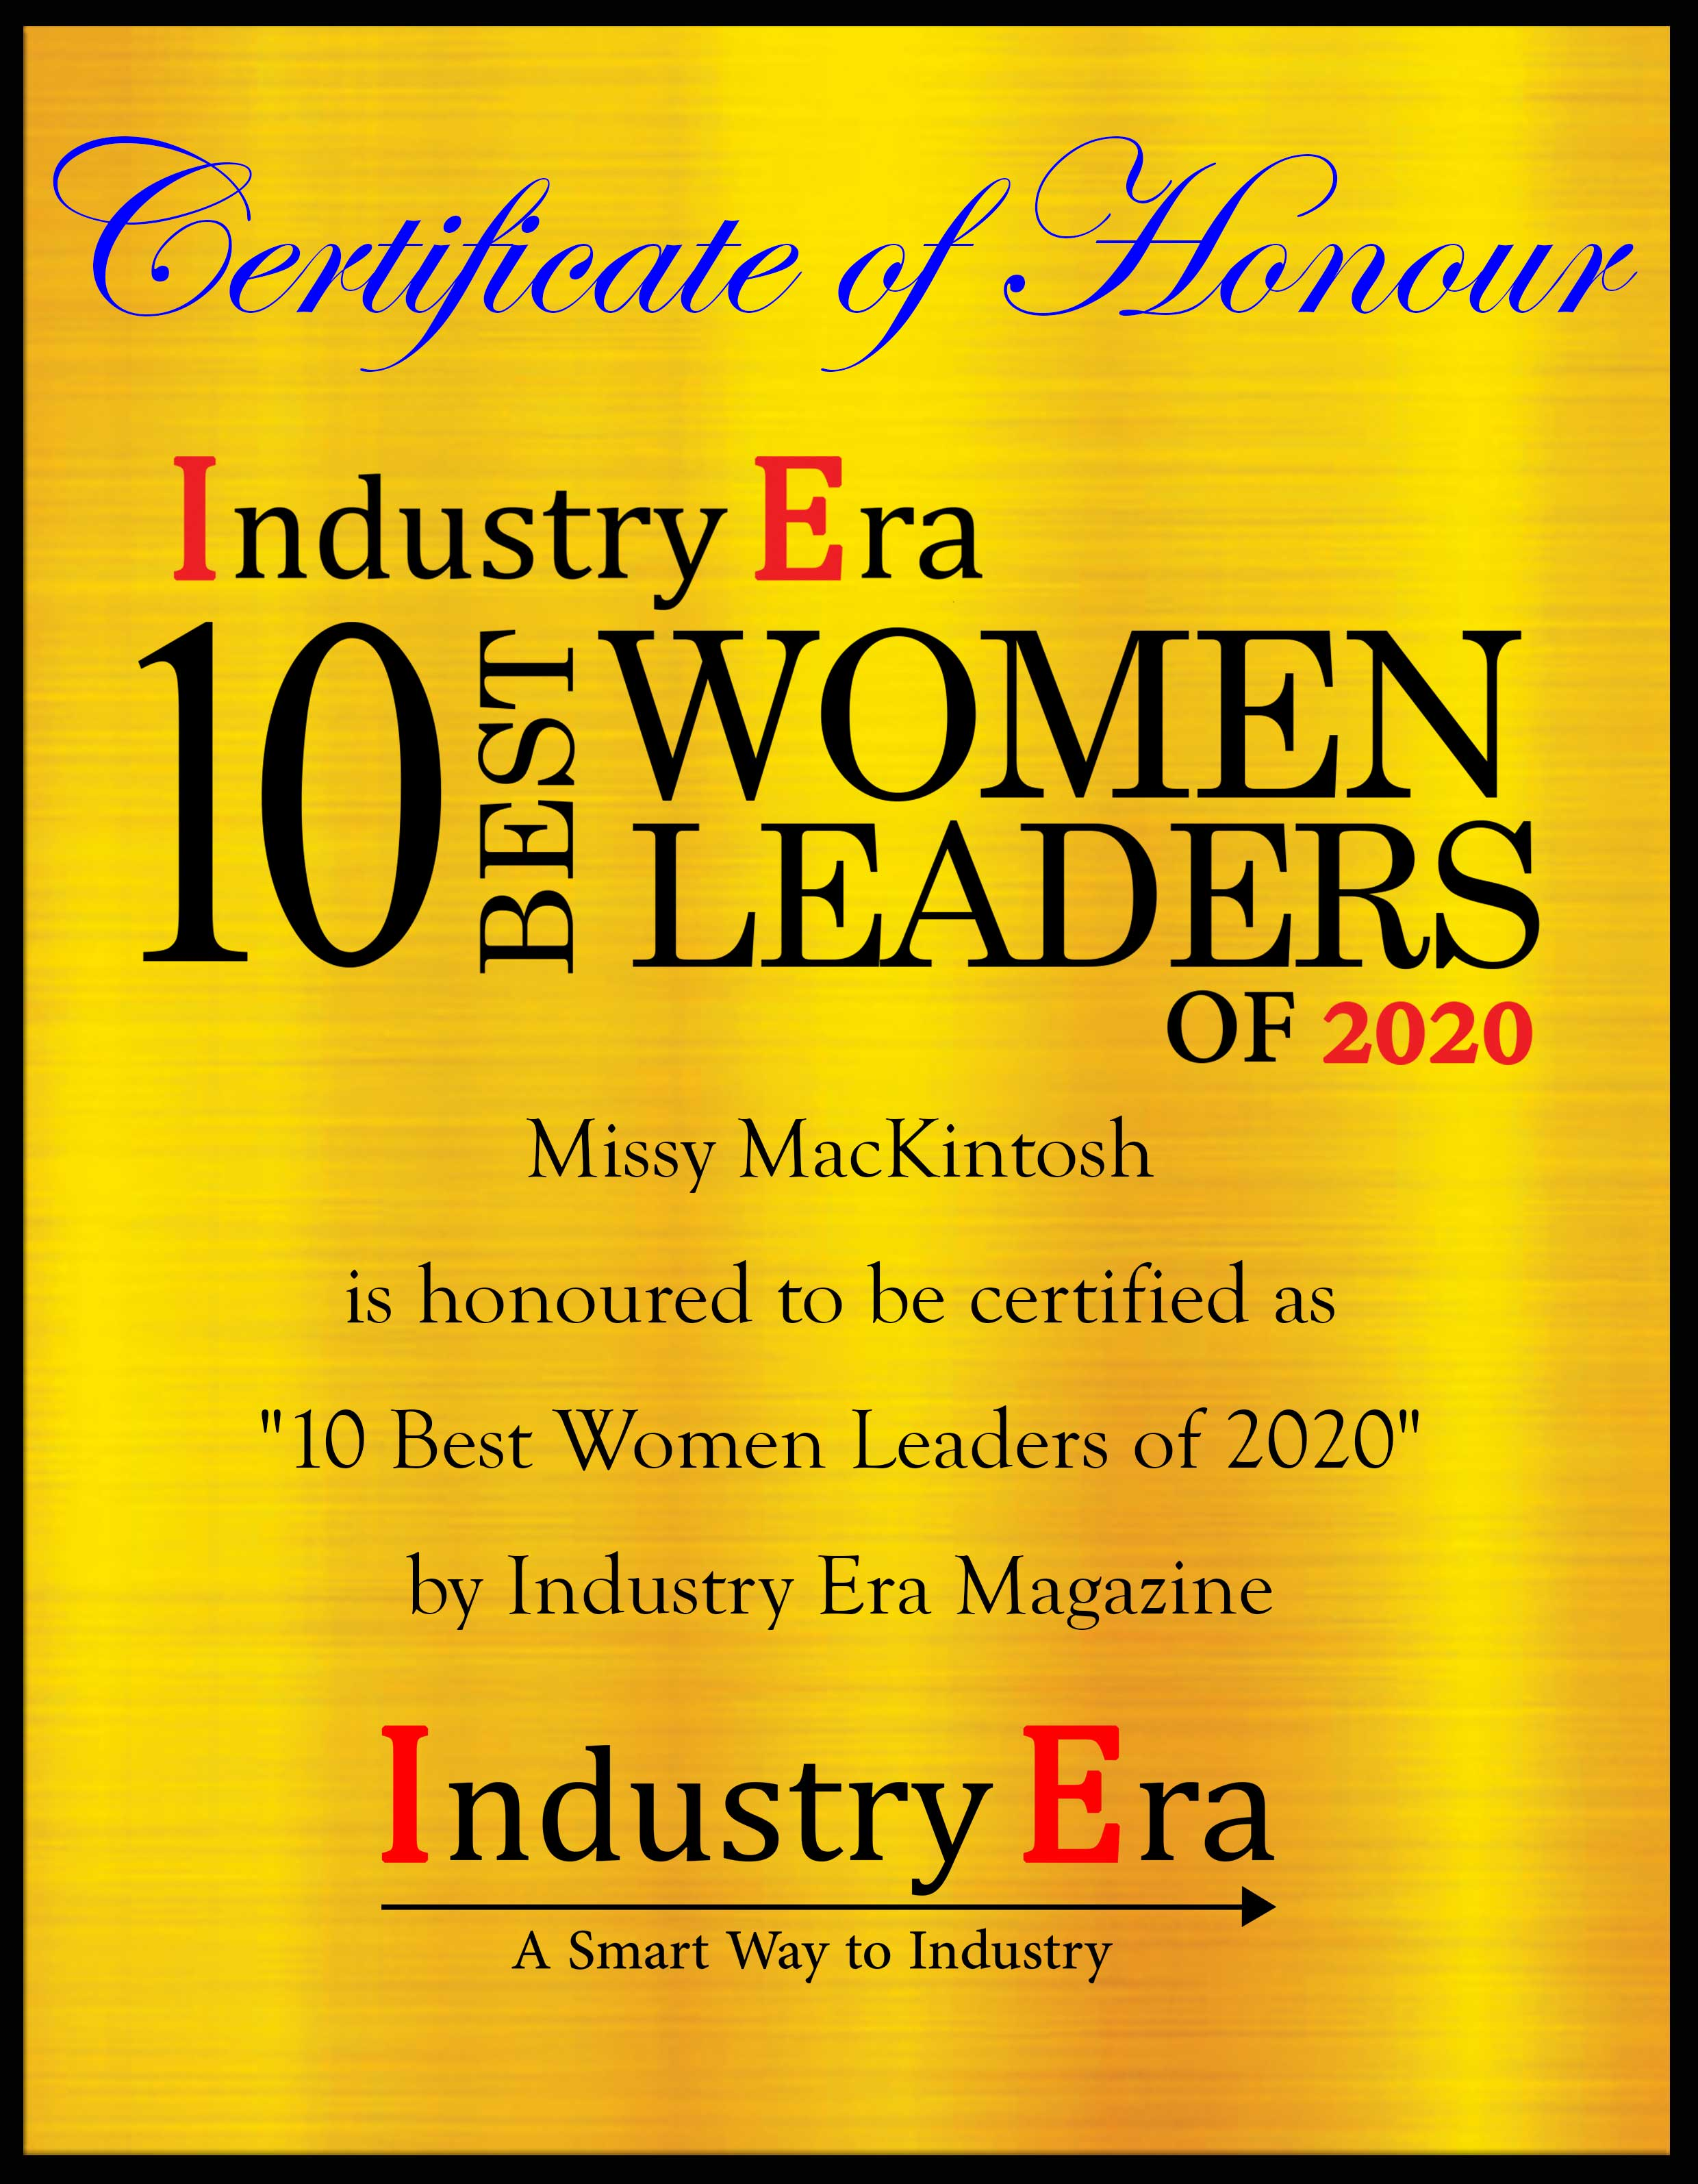 Missy MacKintosh, founder and CEO of MisMacK Clean Cosmetics Certificate